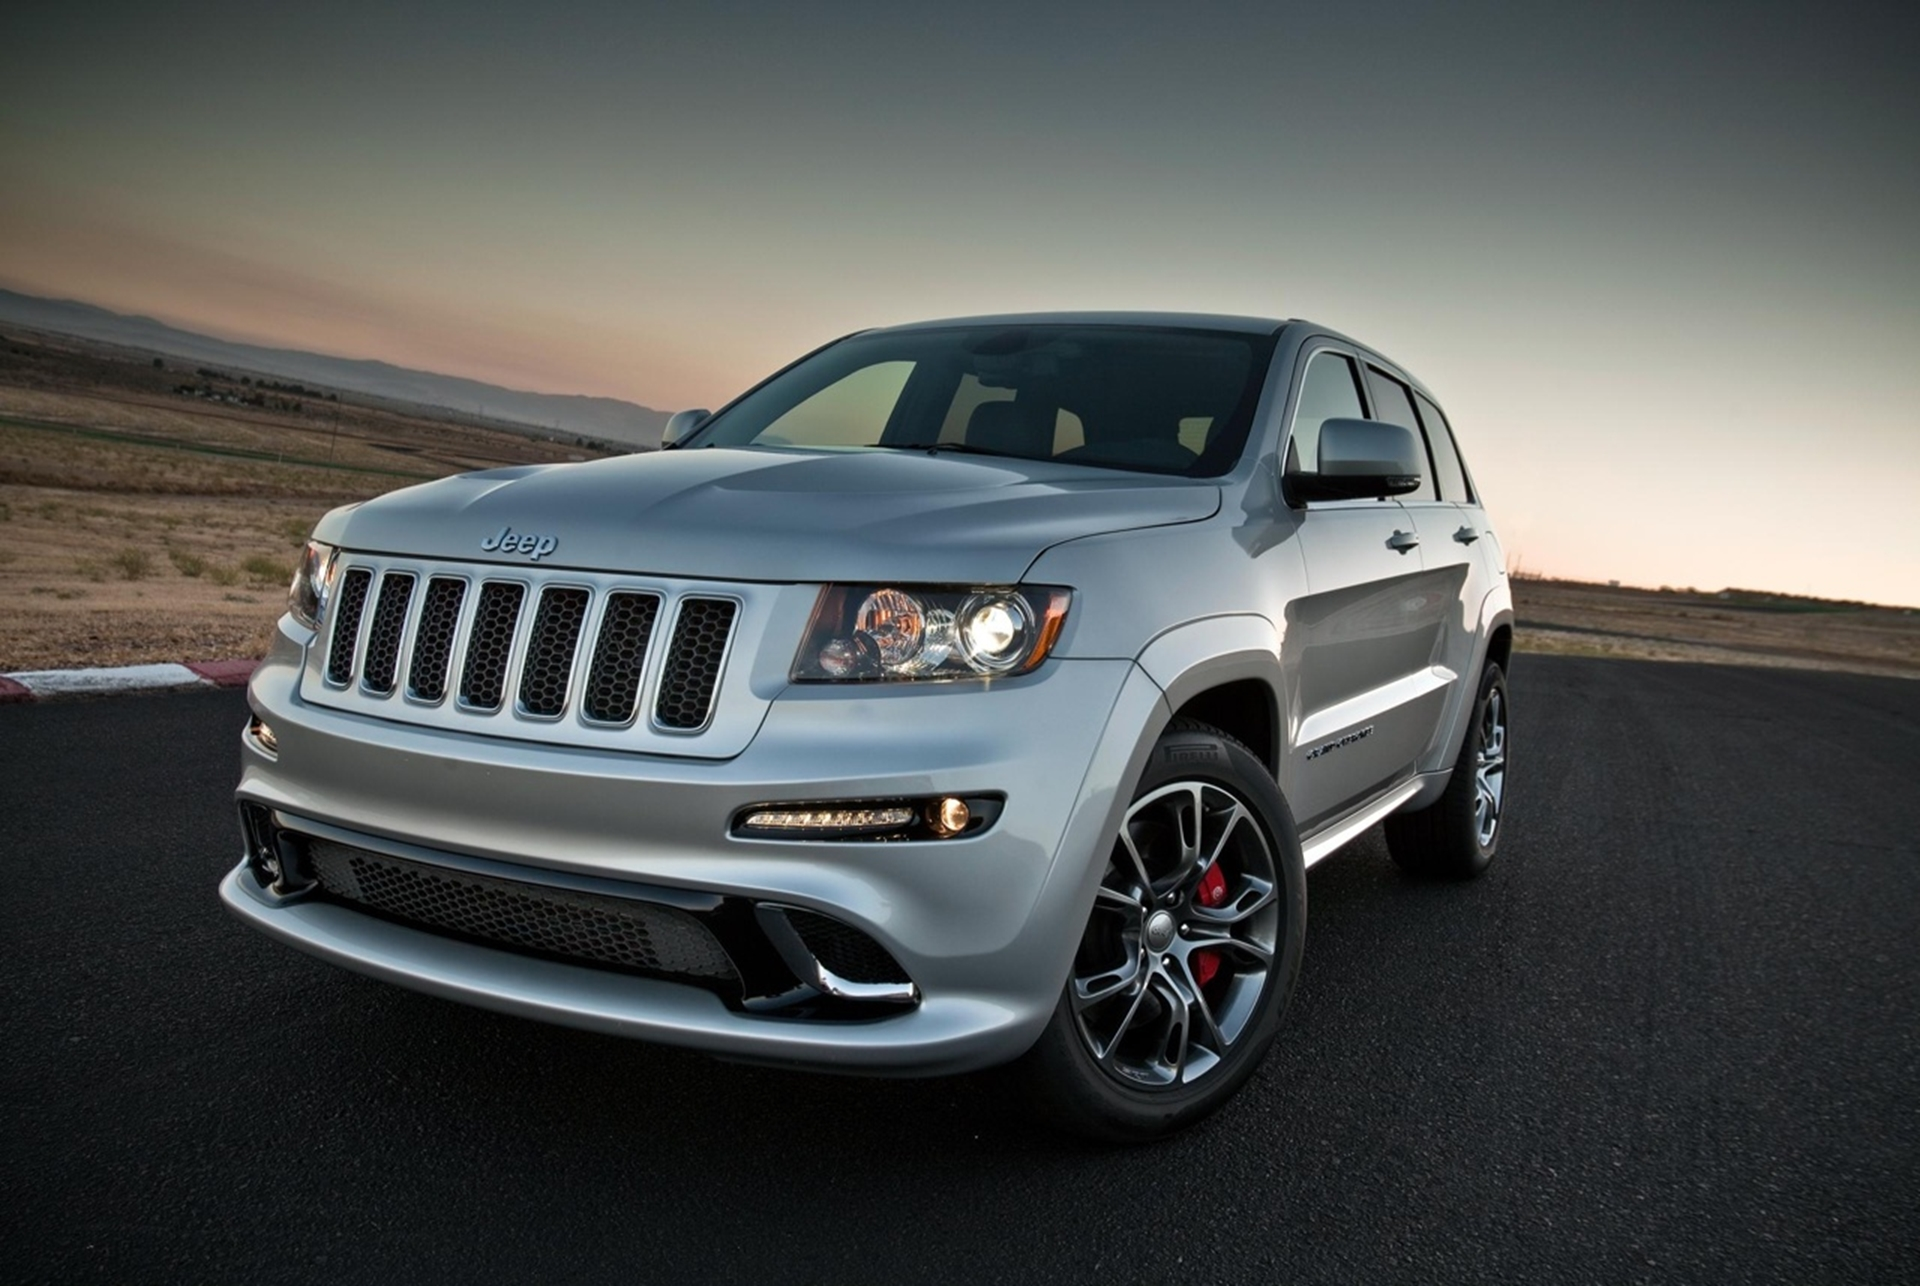 New Jeep Grand Cherokee SRT